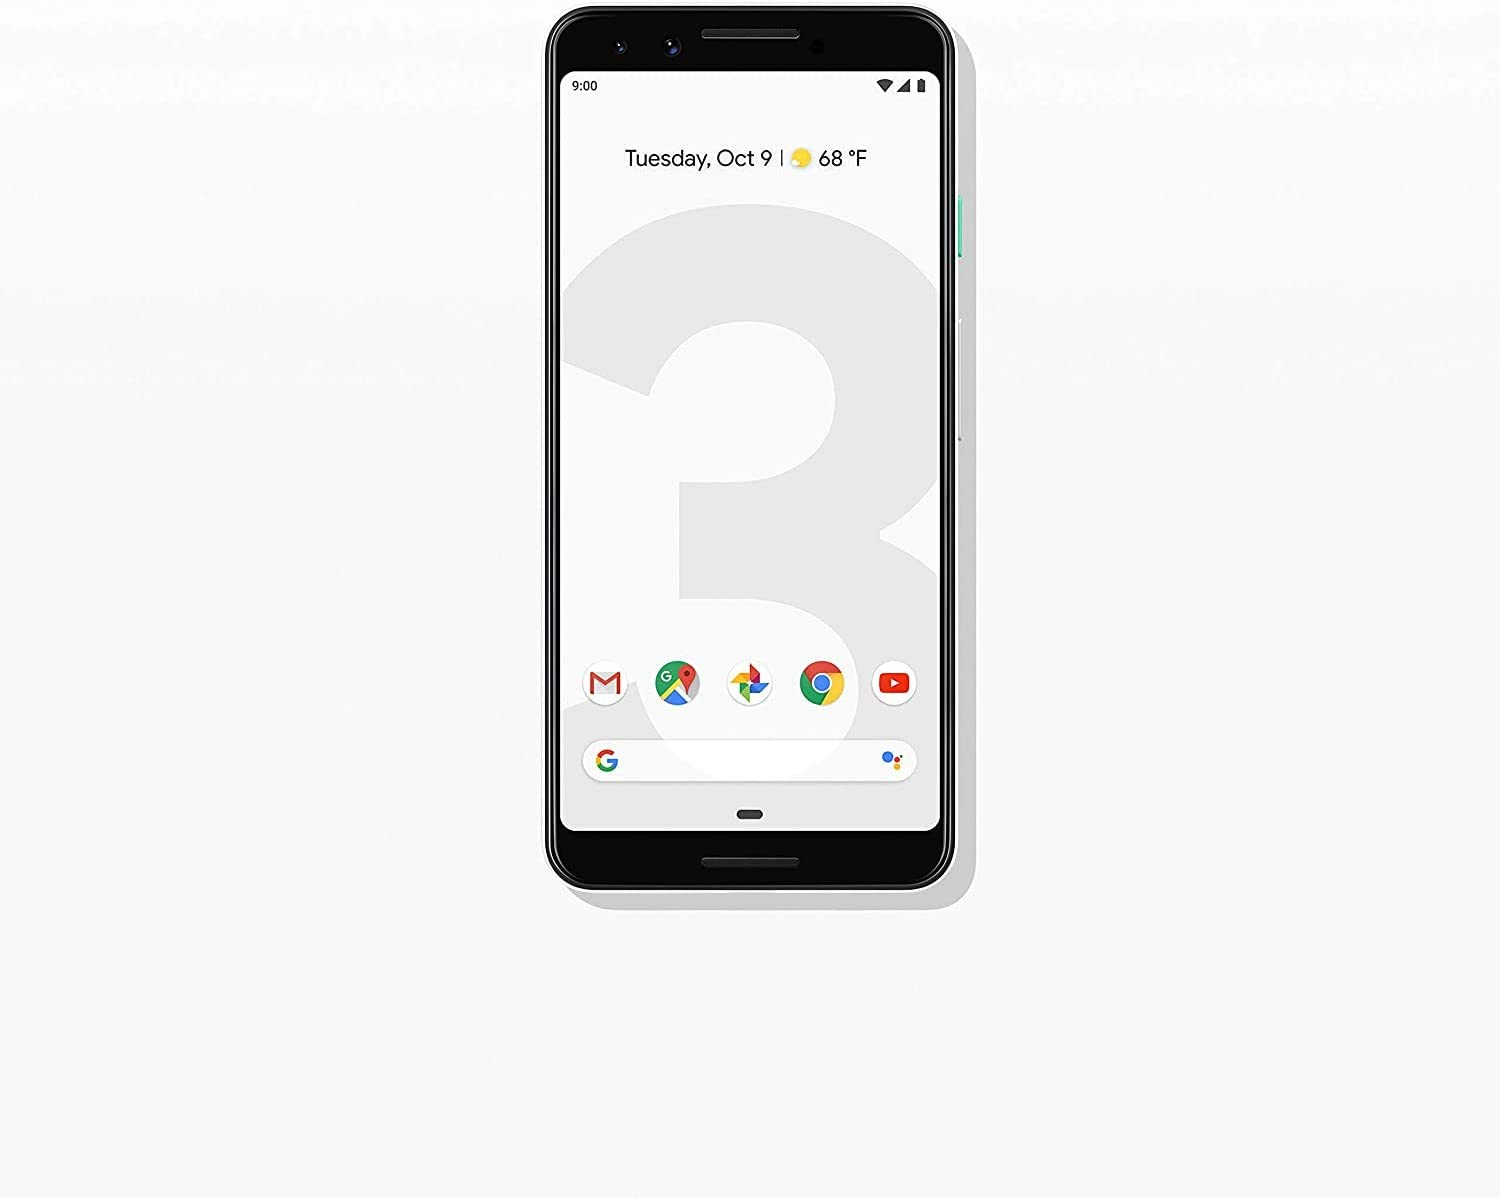 Google Pixel 3 (64GB, 4GB RAM) 5.5 QHD+, IP68 Water Resistant, Snapdragon 845 GSM/CDMA Factory Unlocked (AT&T/T-Mobile/Verizon/Sprint) (Clearly White)